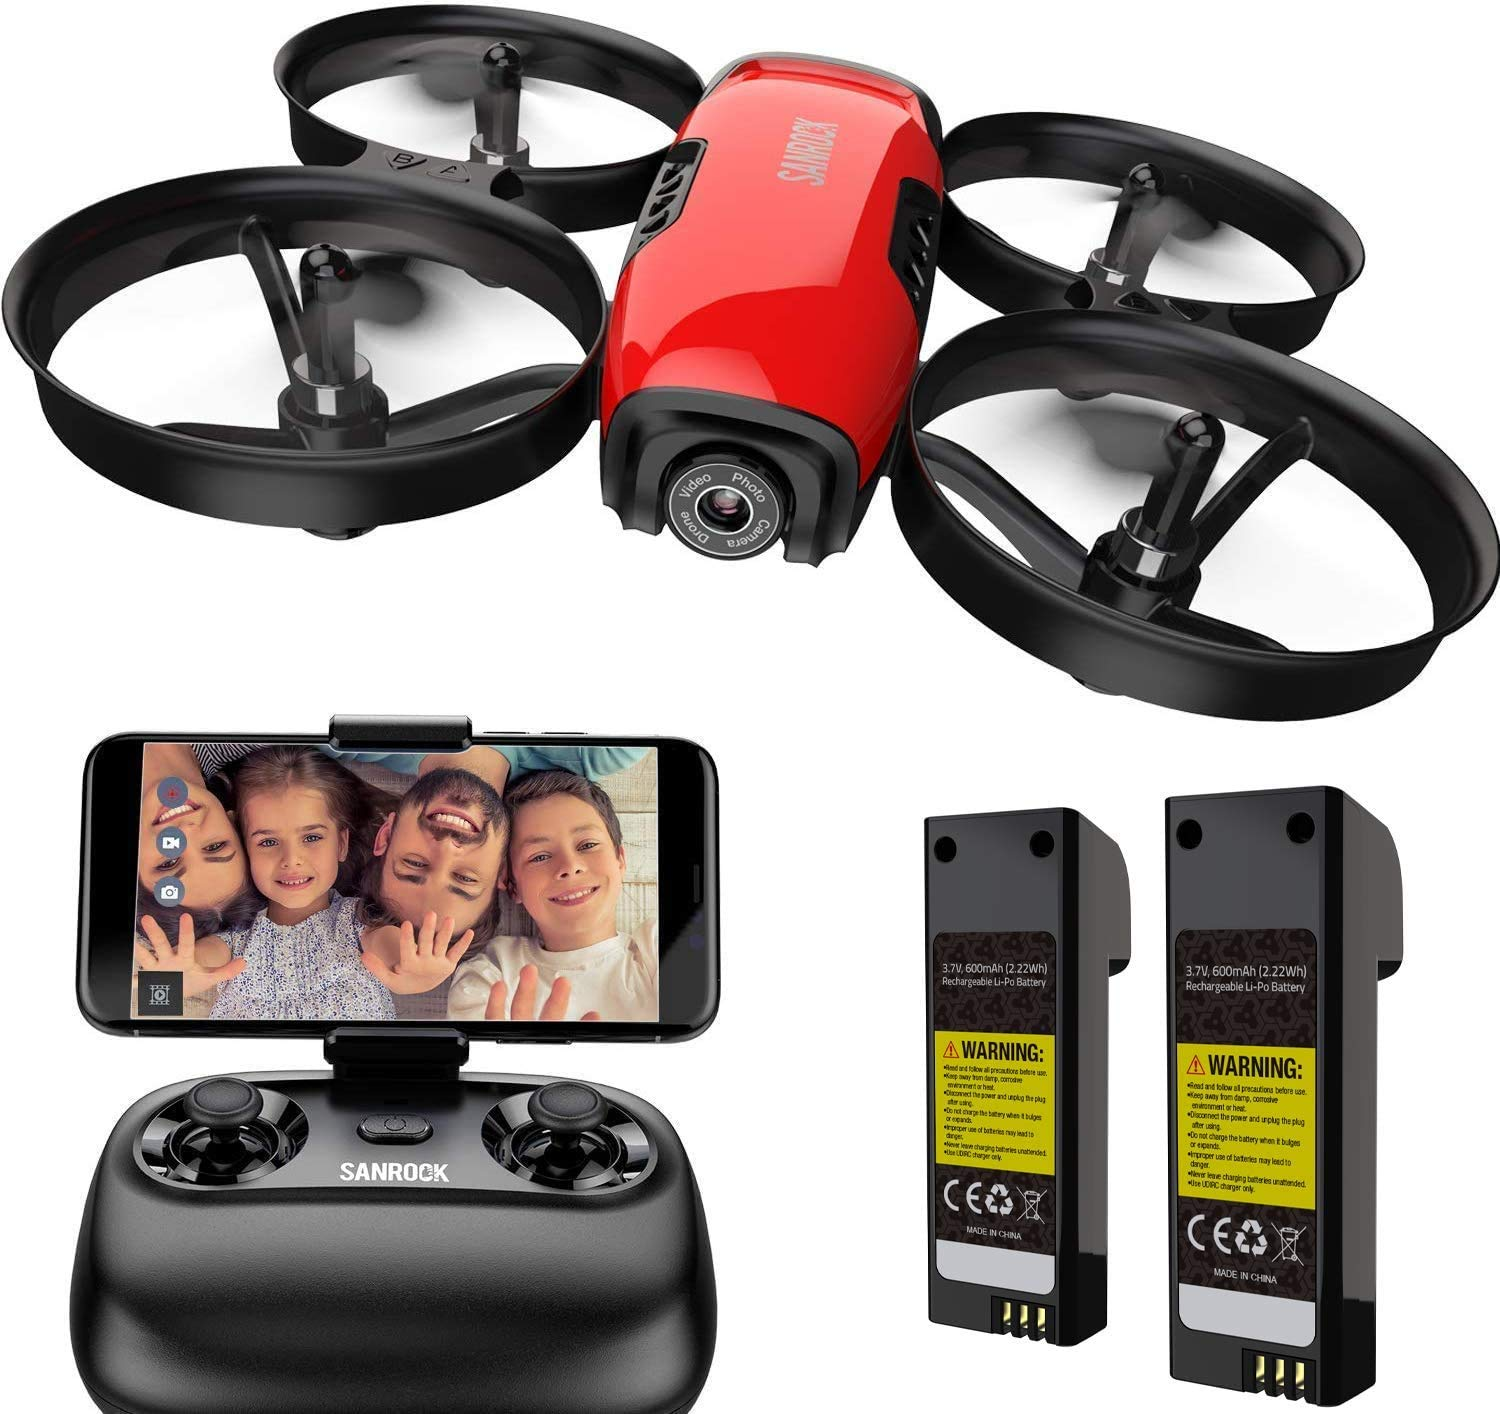 SANROCK U61W Drones for Kids with 720P HD Camera, Mini RC Drone Quadcopter, Support Altitude Hold, Route Making, Headless Mode, One-Key Start, Emergency Stop, Great Gift for Boys Girls 2 Batteries